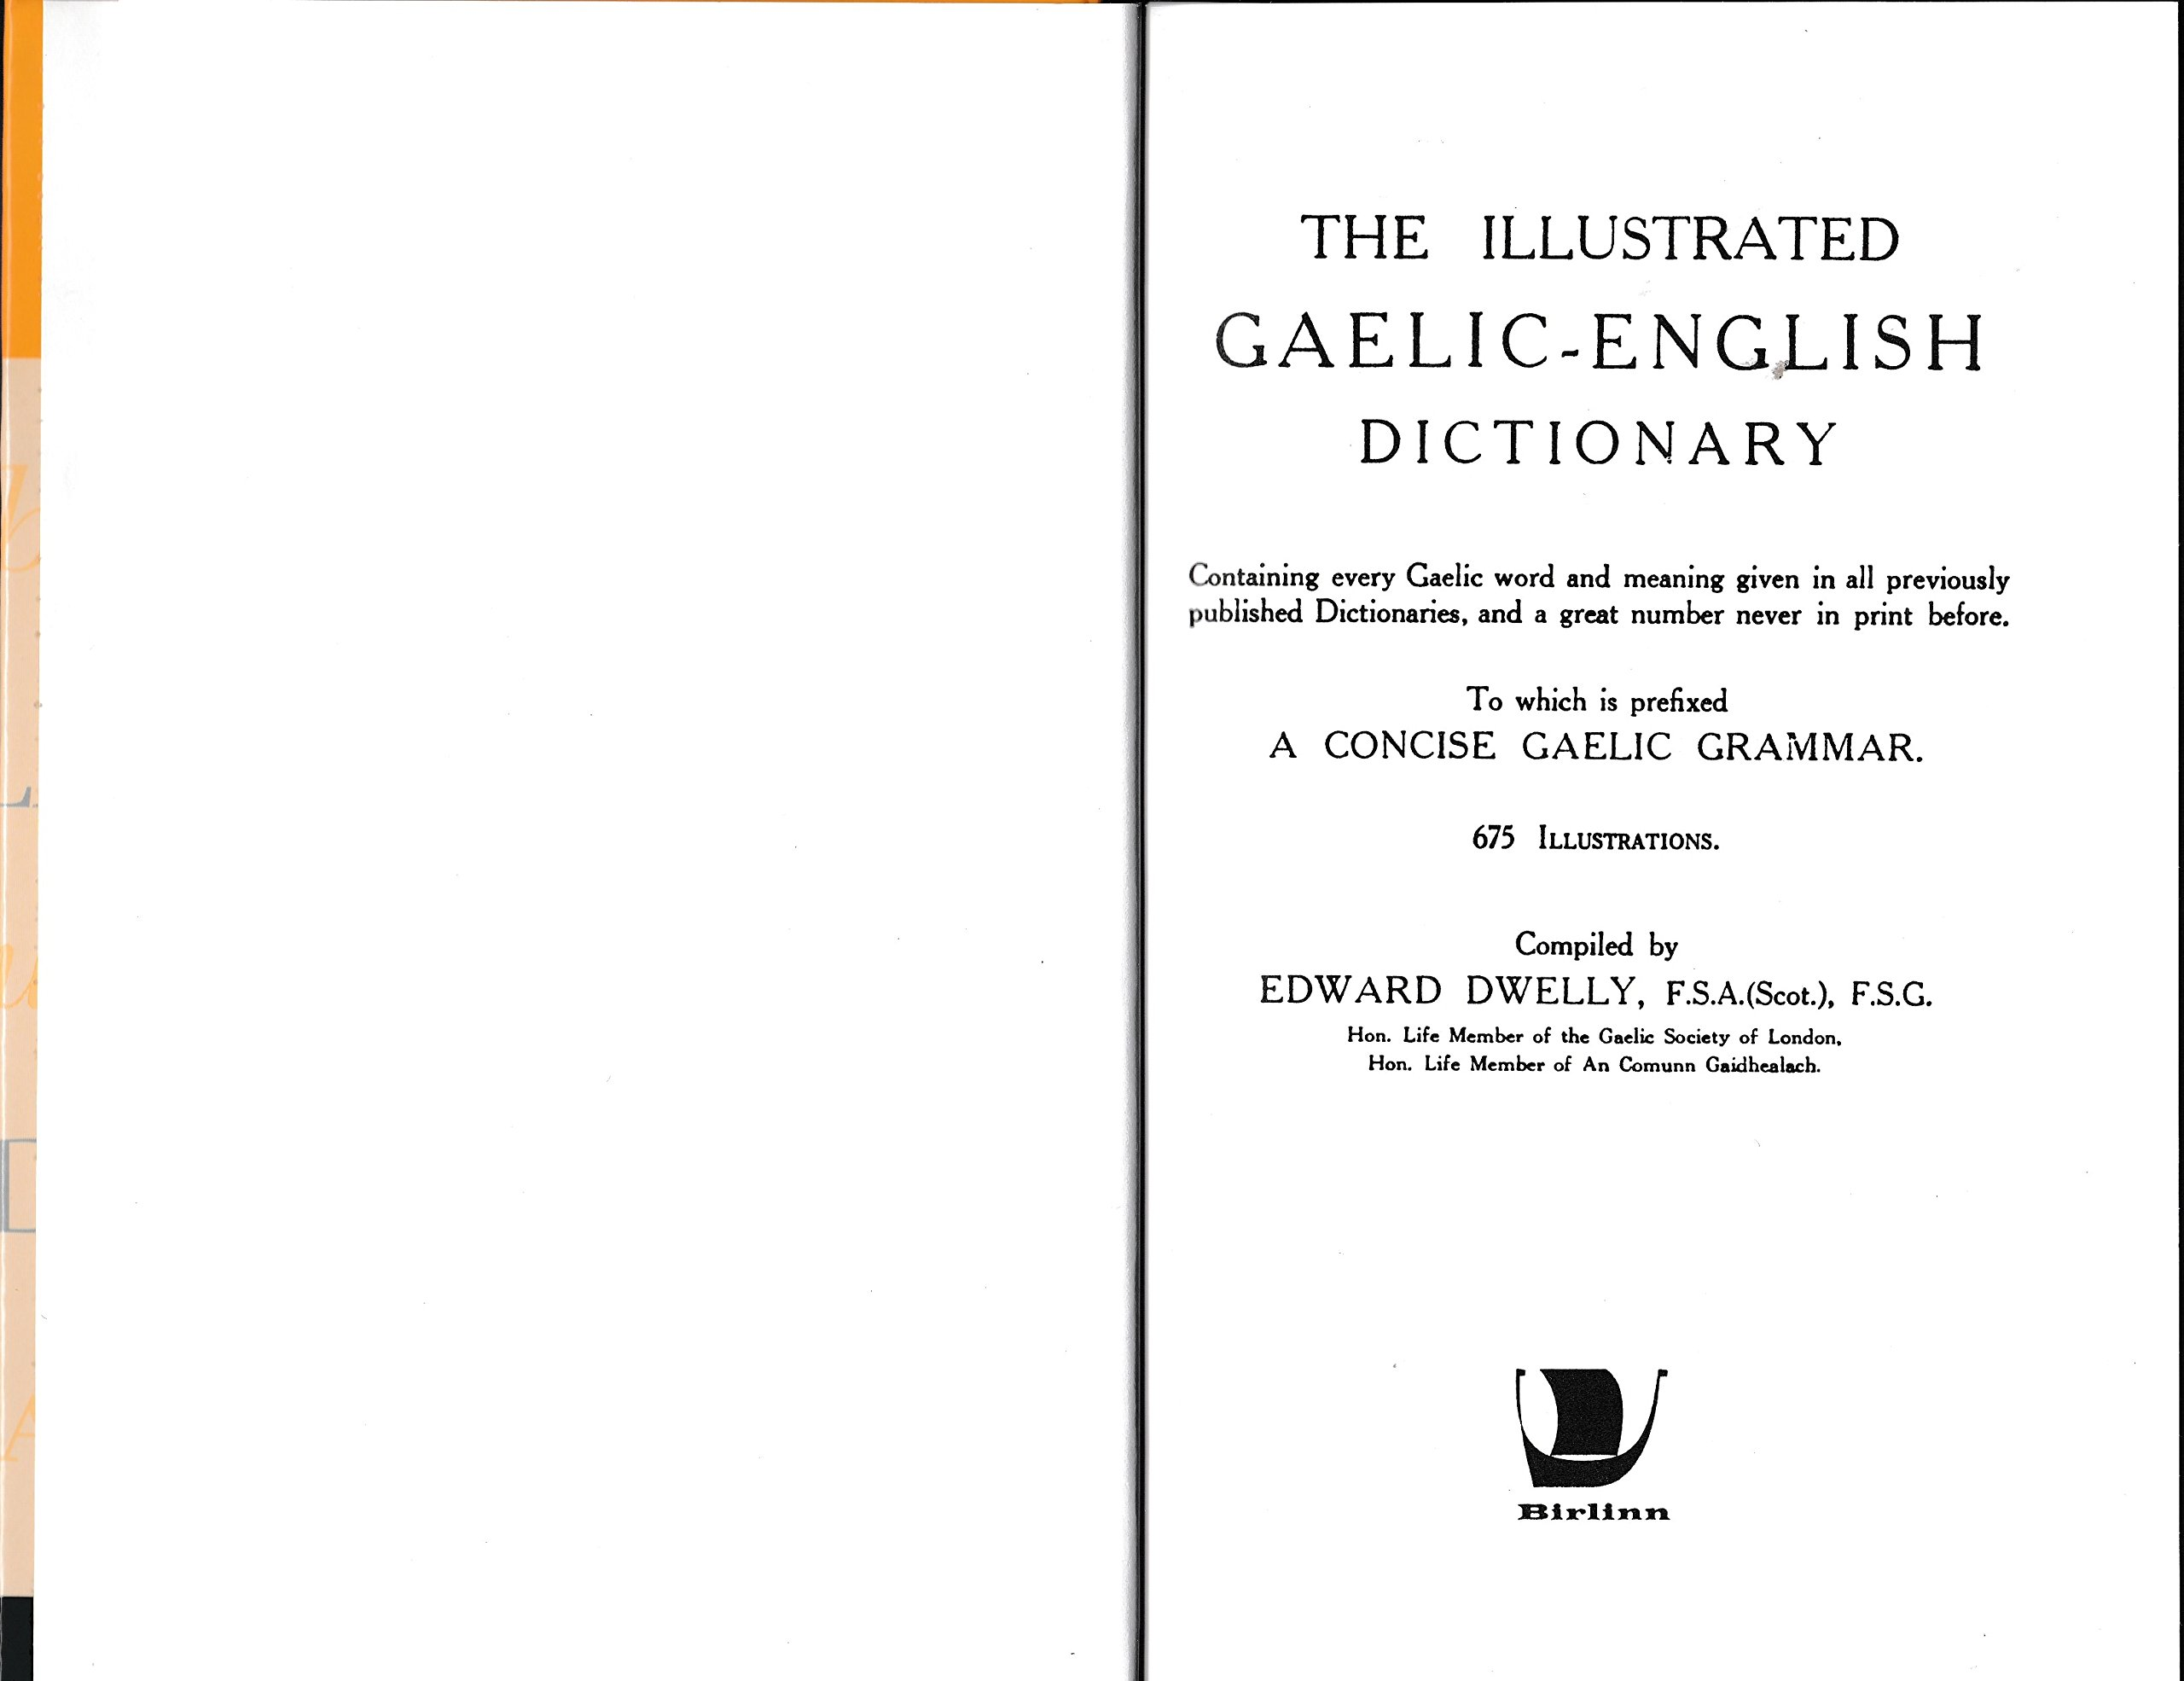 Buy The Illustrated Gaelic-English Dictionary, to Which is Prefixed a  Concise Gaelic Grammar Book Online at Low Prices in India | The Illustrated  ...